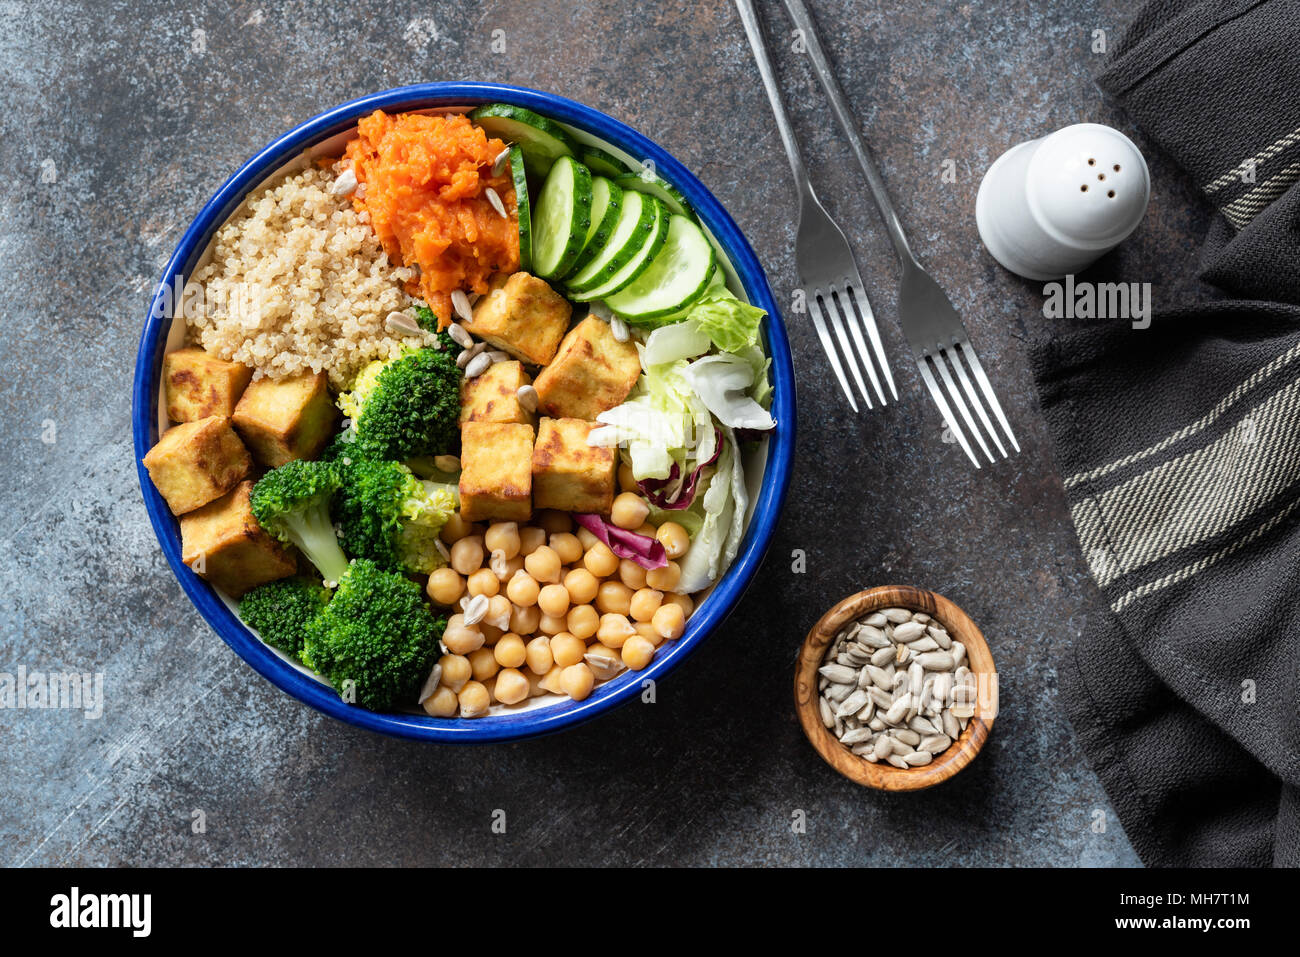 Colorful Buddha bowl on dark background, top view. Buddha bowl with quinoa, tofu, broccoli, sweet potato, chickpea and cucumber. Healthy vegetarian sa - Stock Image